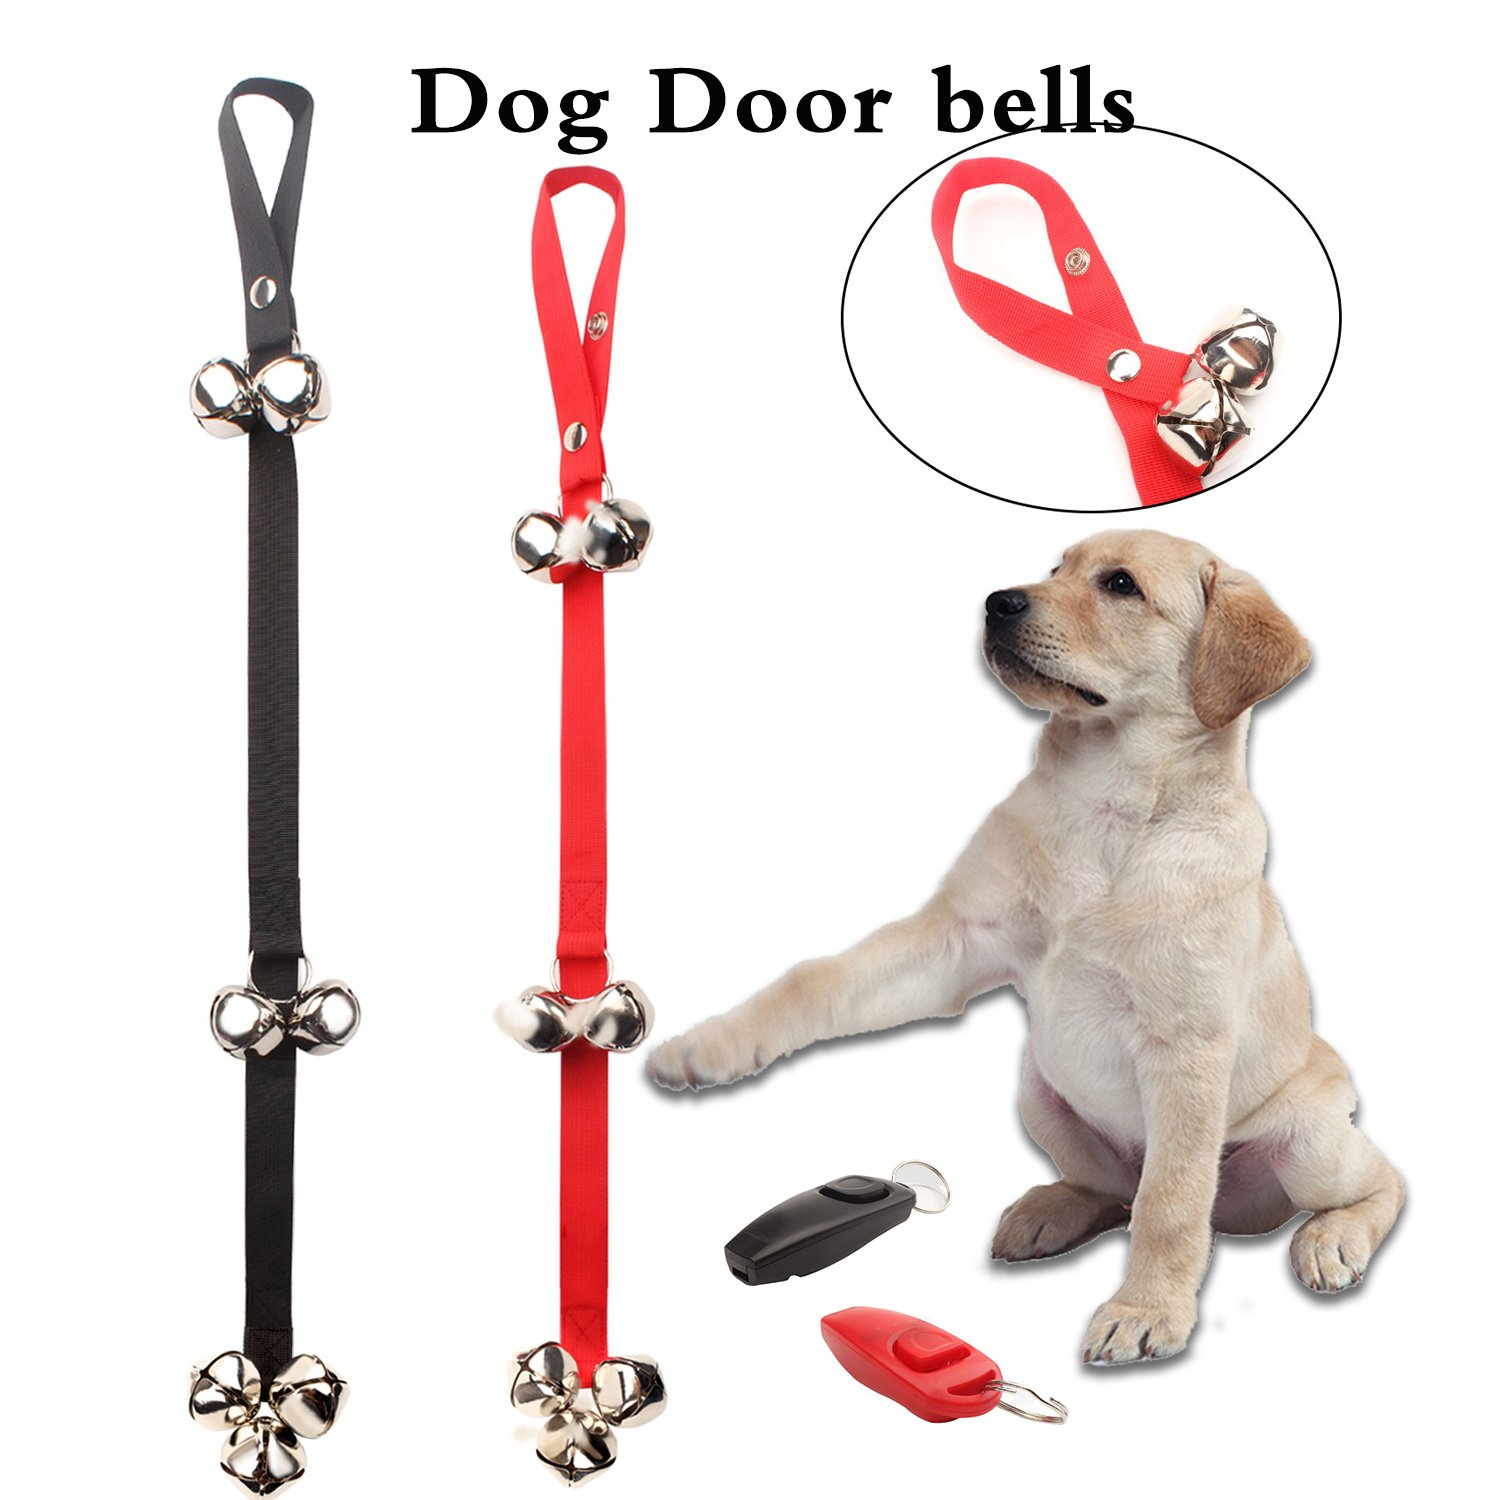 GUQI Pack of 2 Dog Doorbells with 7 Extra Loud Bells, Adjustable Dog Bells for potty training/Housetraining, Training Bell for Housebreaking-Included 2 Upgrade Training clicker with whistle